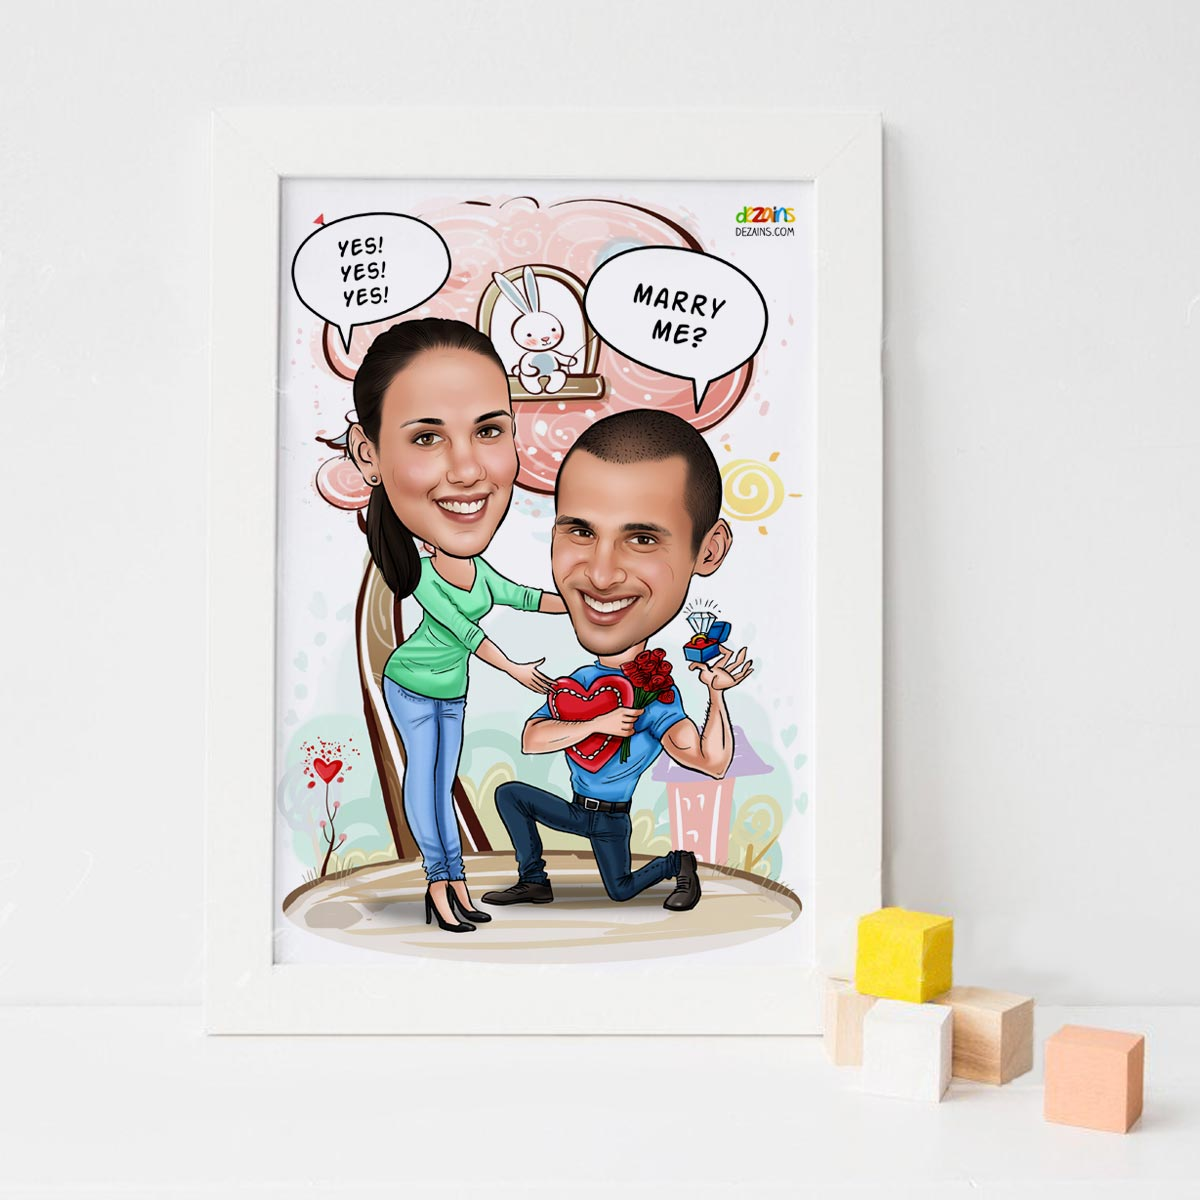 guy-proposing-girl-caricature-by-dezains-1